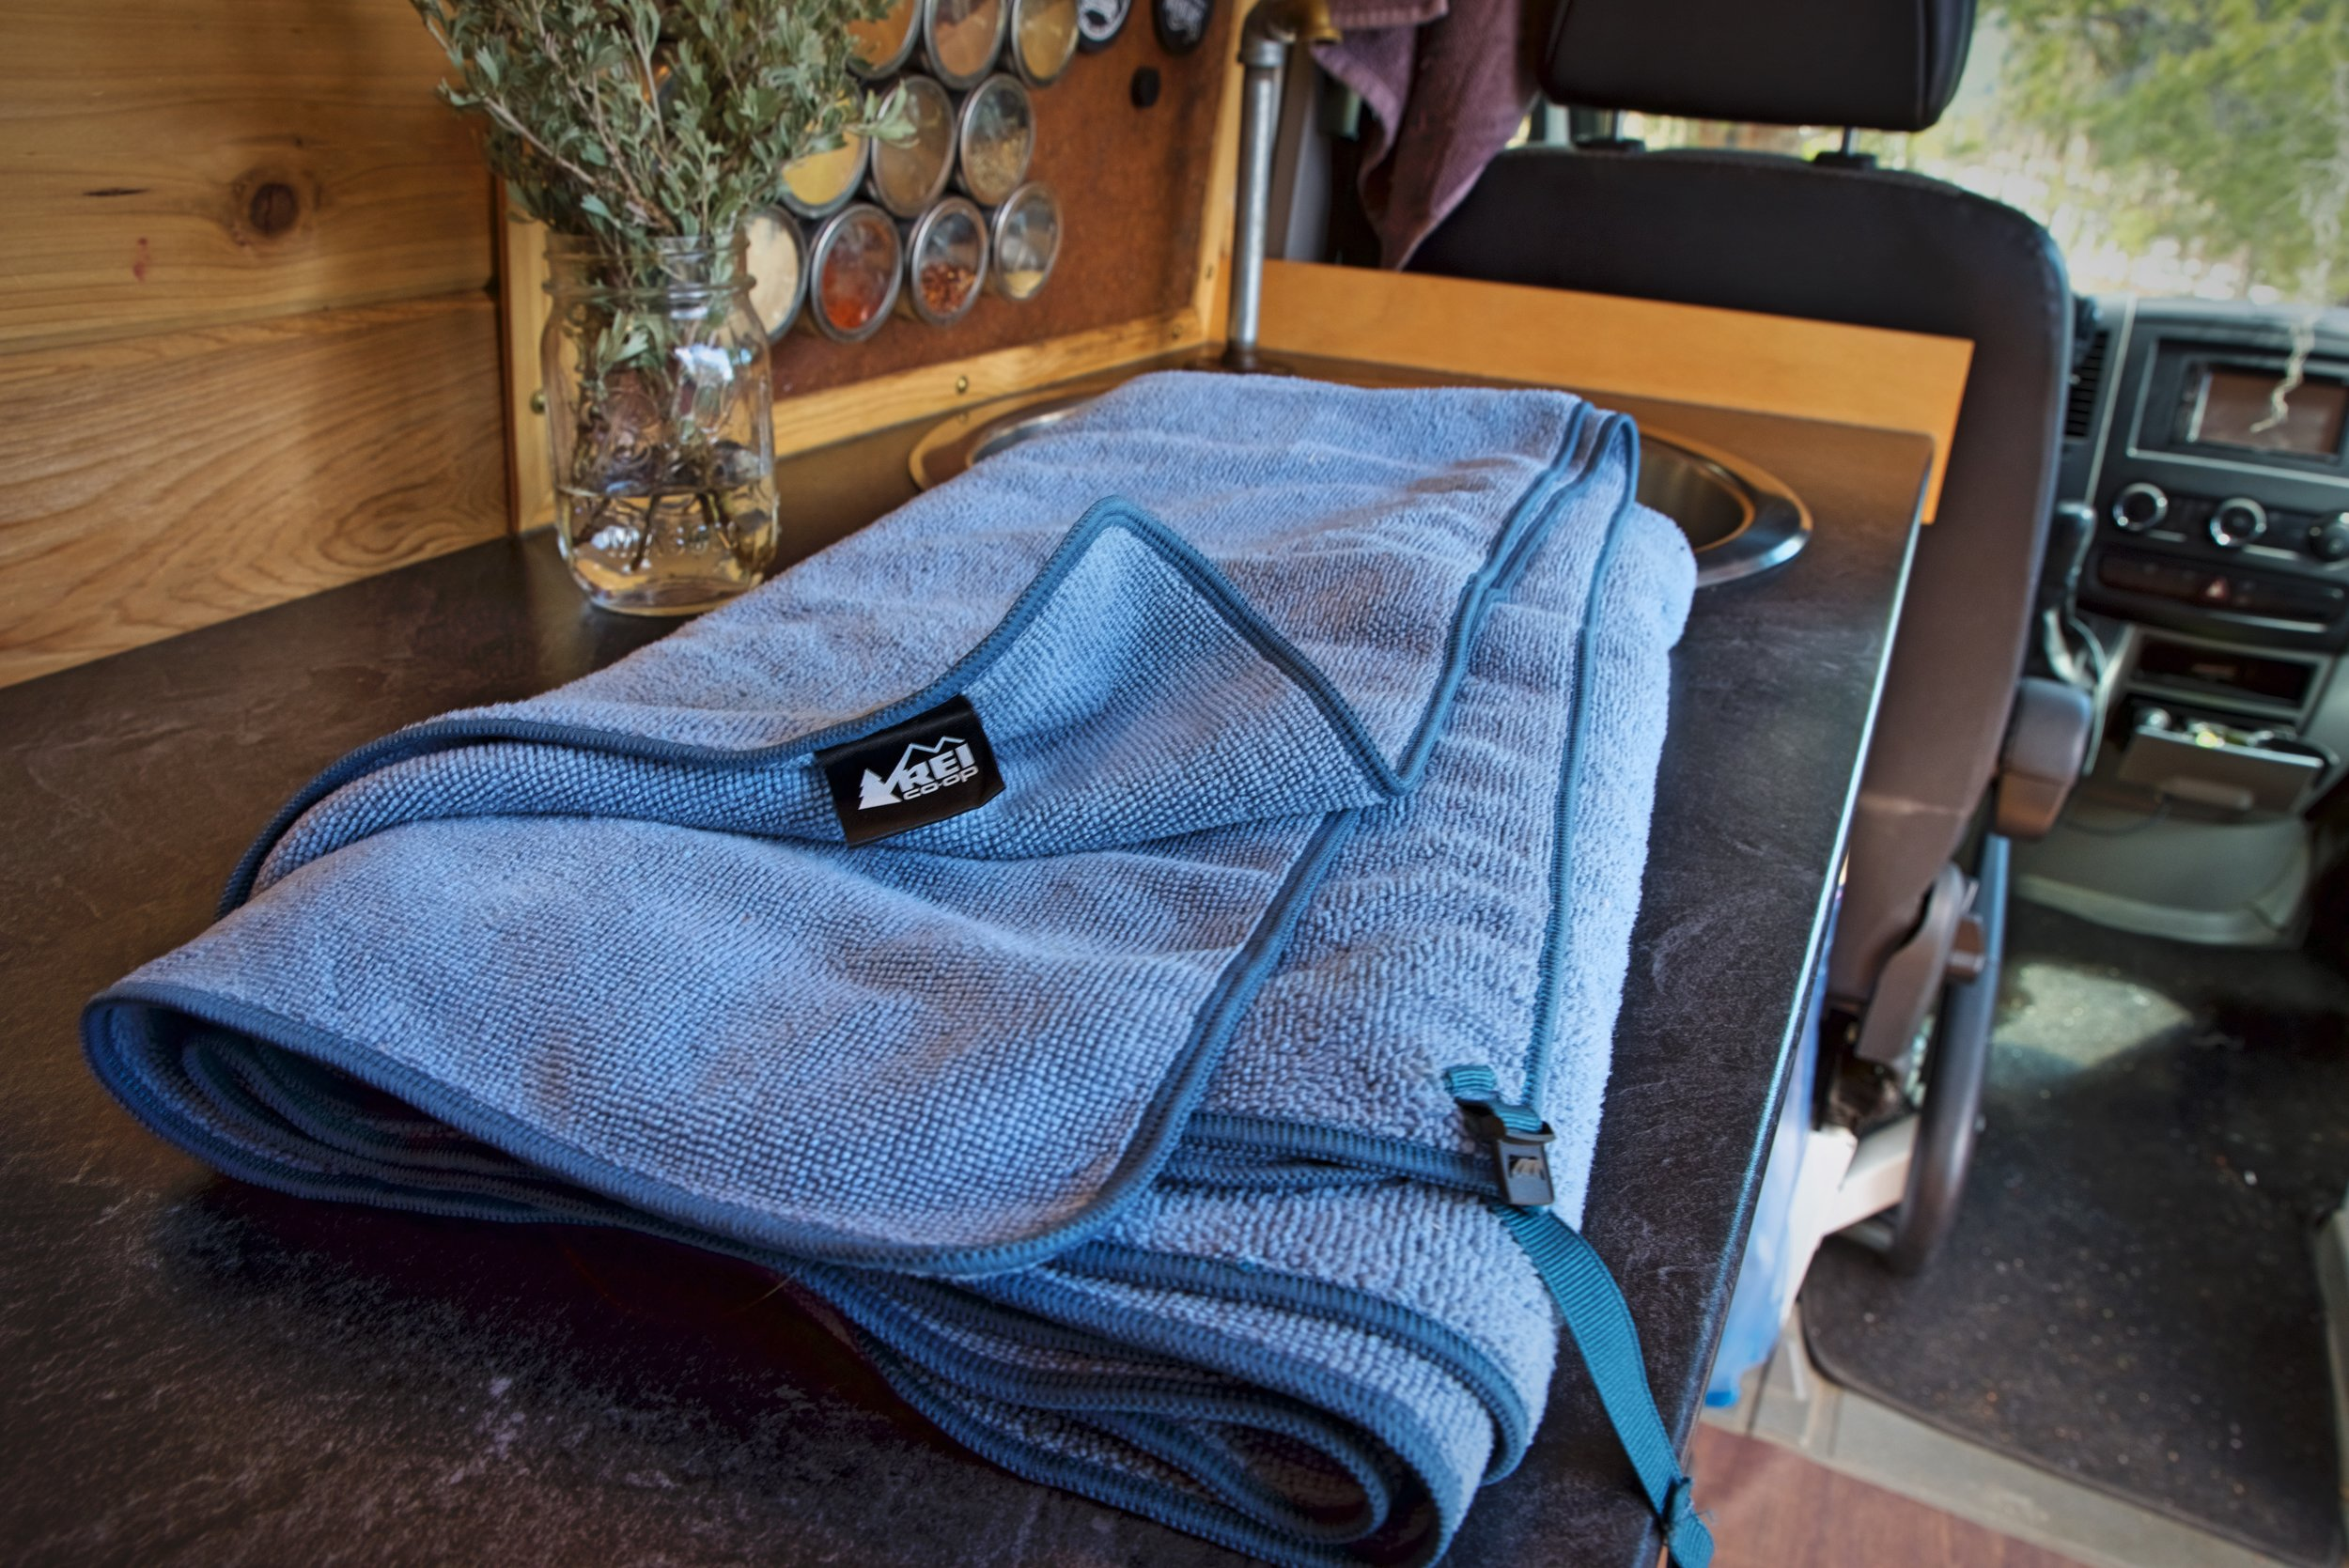 Make sure to keep a towel nearby so that you clean up any water that doesn't make it to the sink. We like these camp towels for Vanlife, because they dry really quickly.